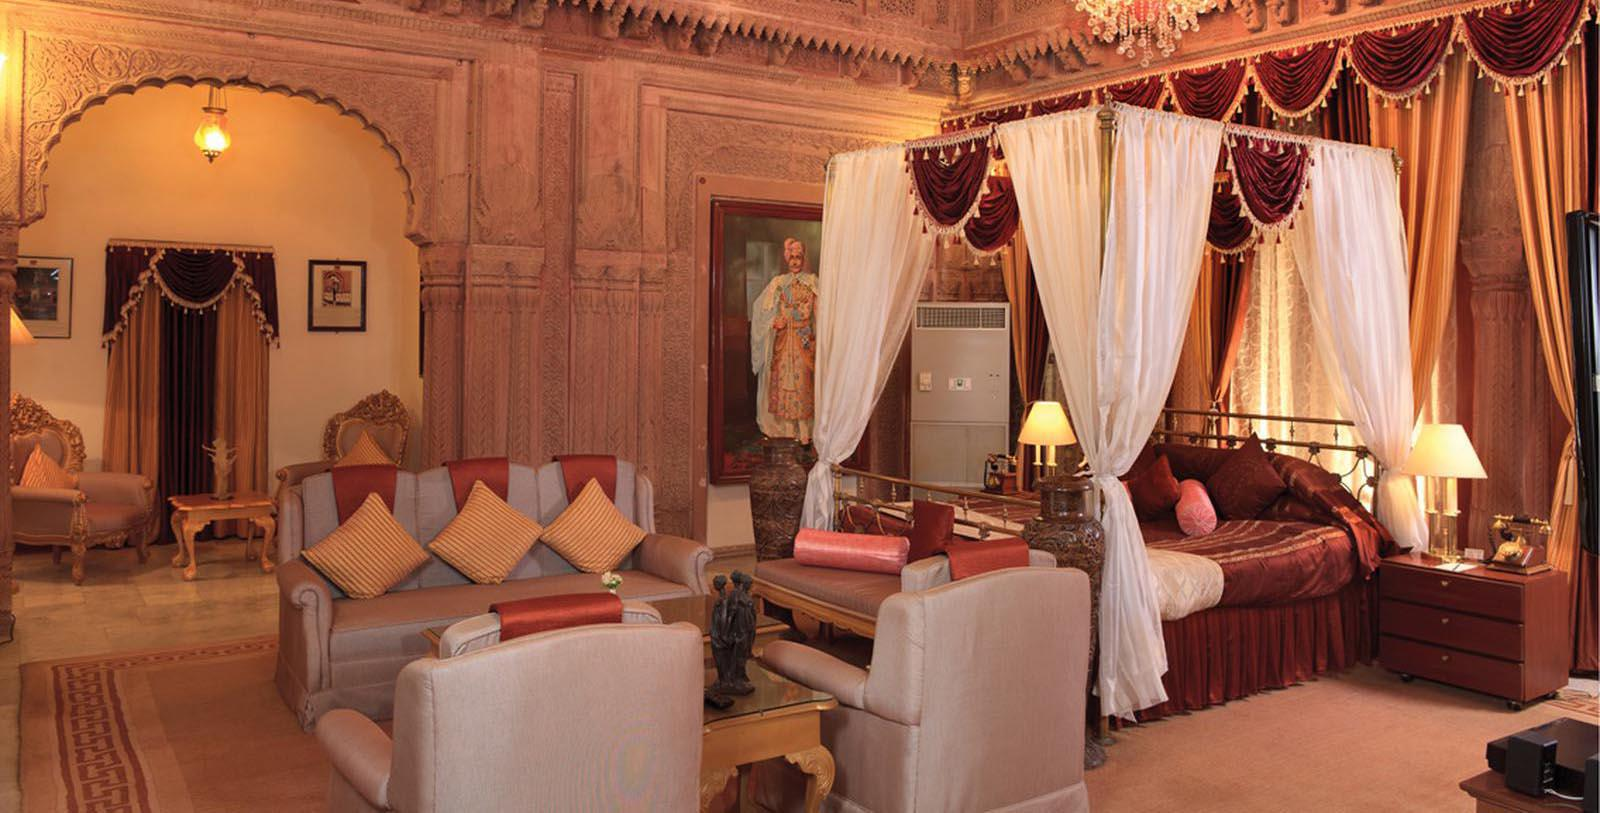 Image of Guestroom Interior Laxmi Niwas Palace, 1904, Member of Historic Hotels Worldwide, in Bikaner, India, Location